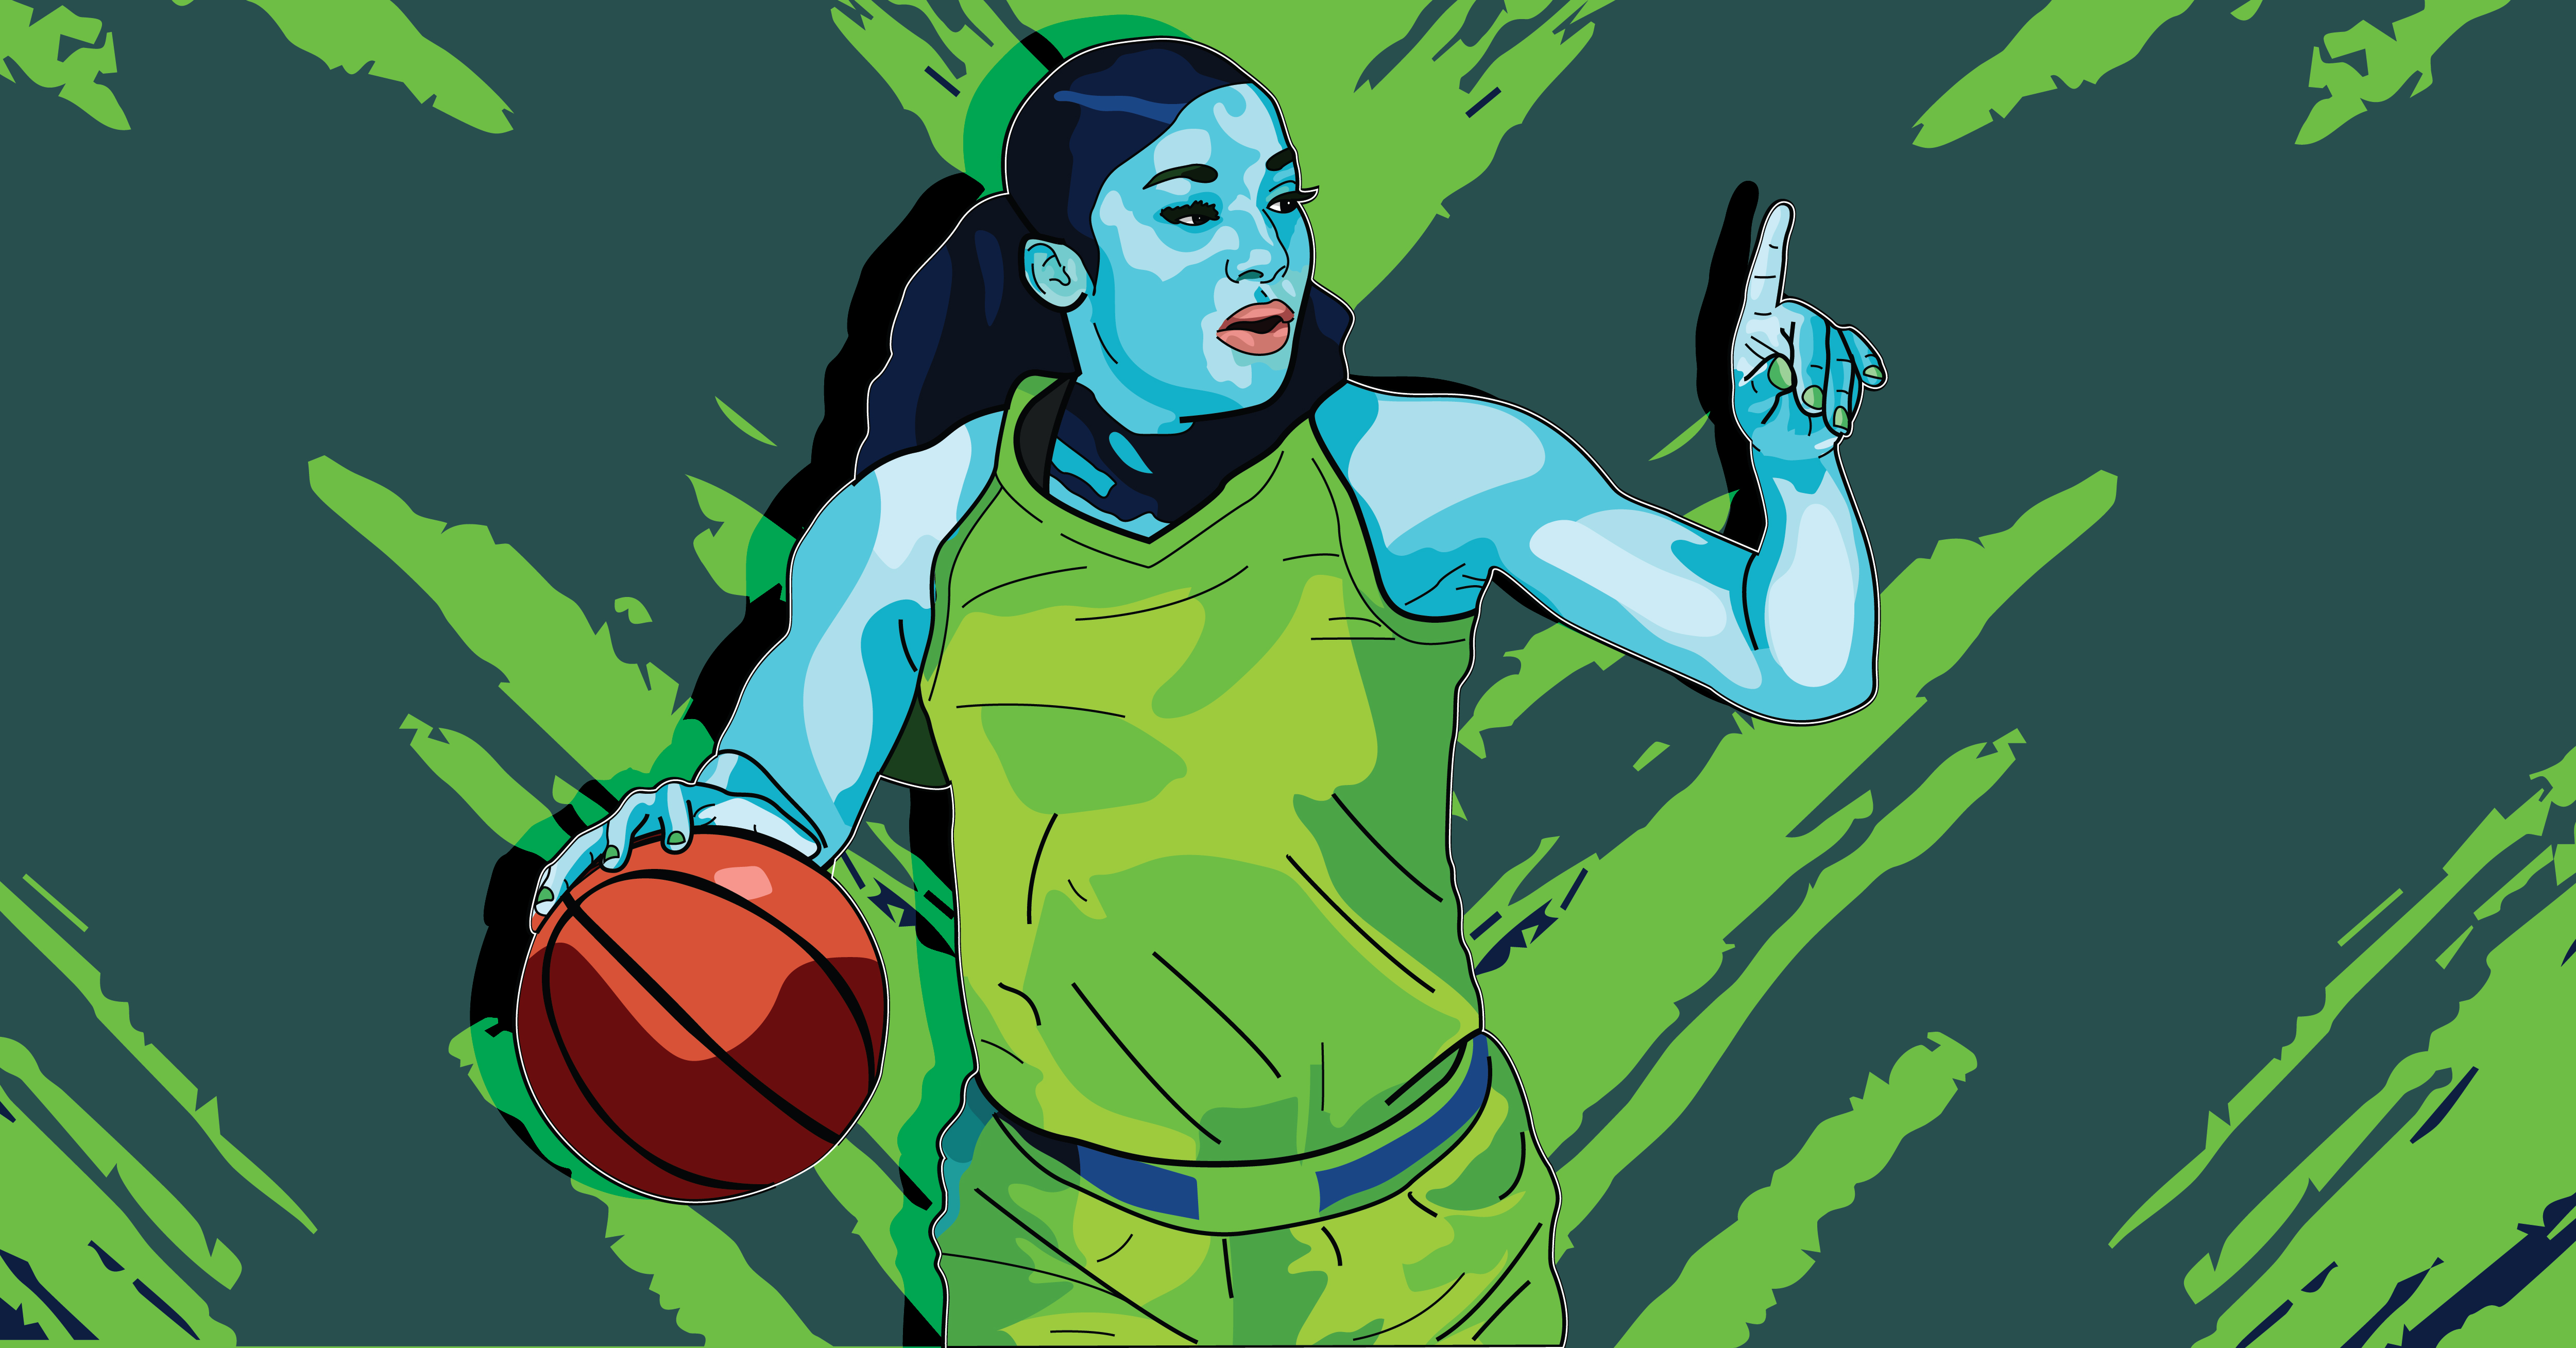 WNBA+Nike: The Growing Innovative Partnership